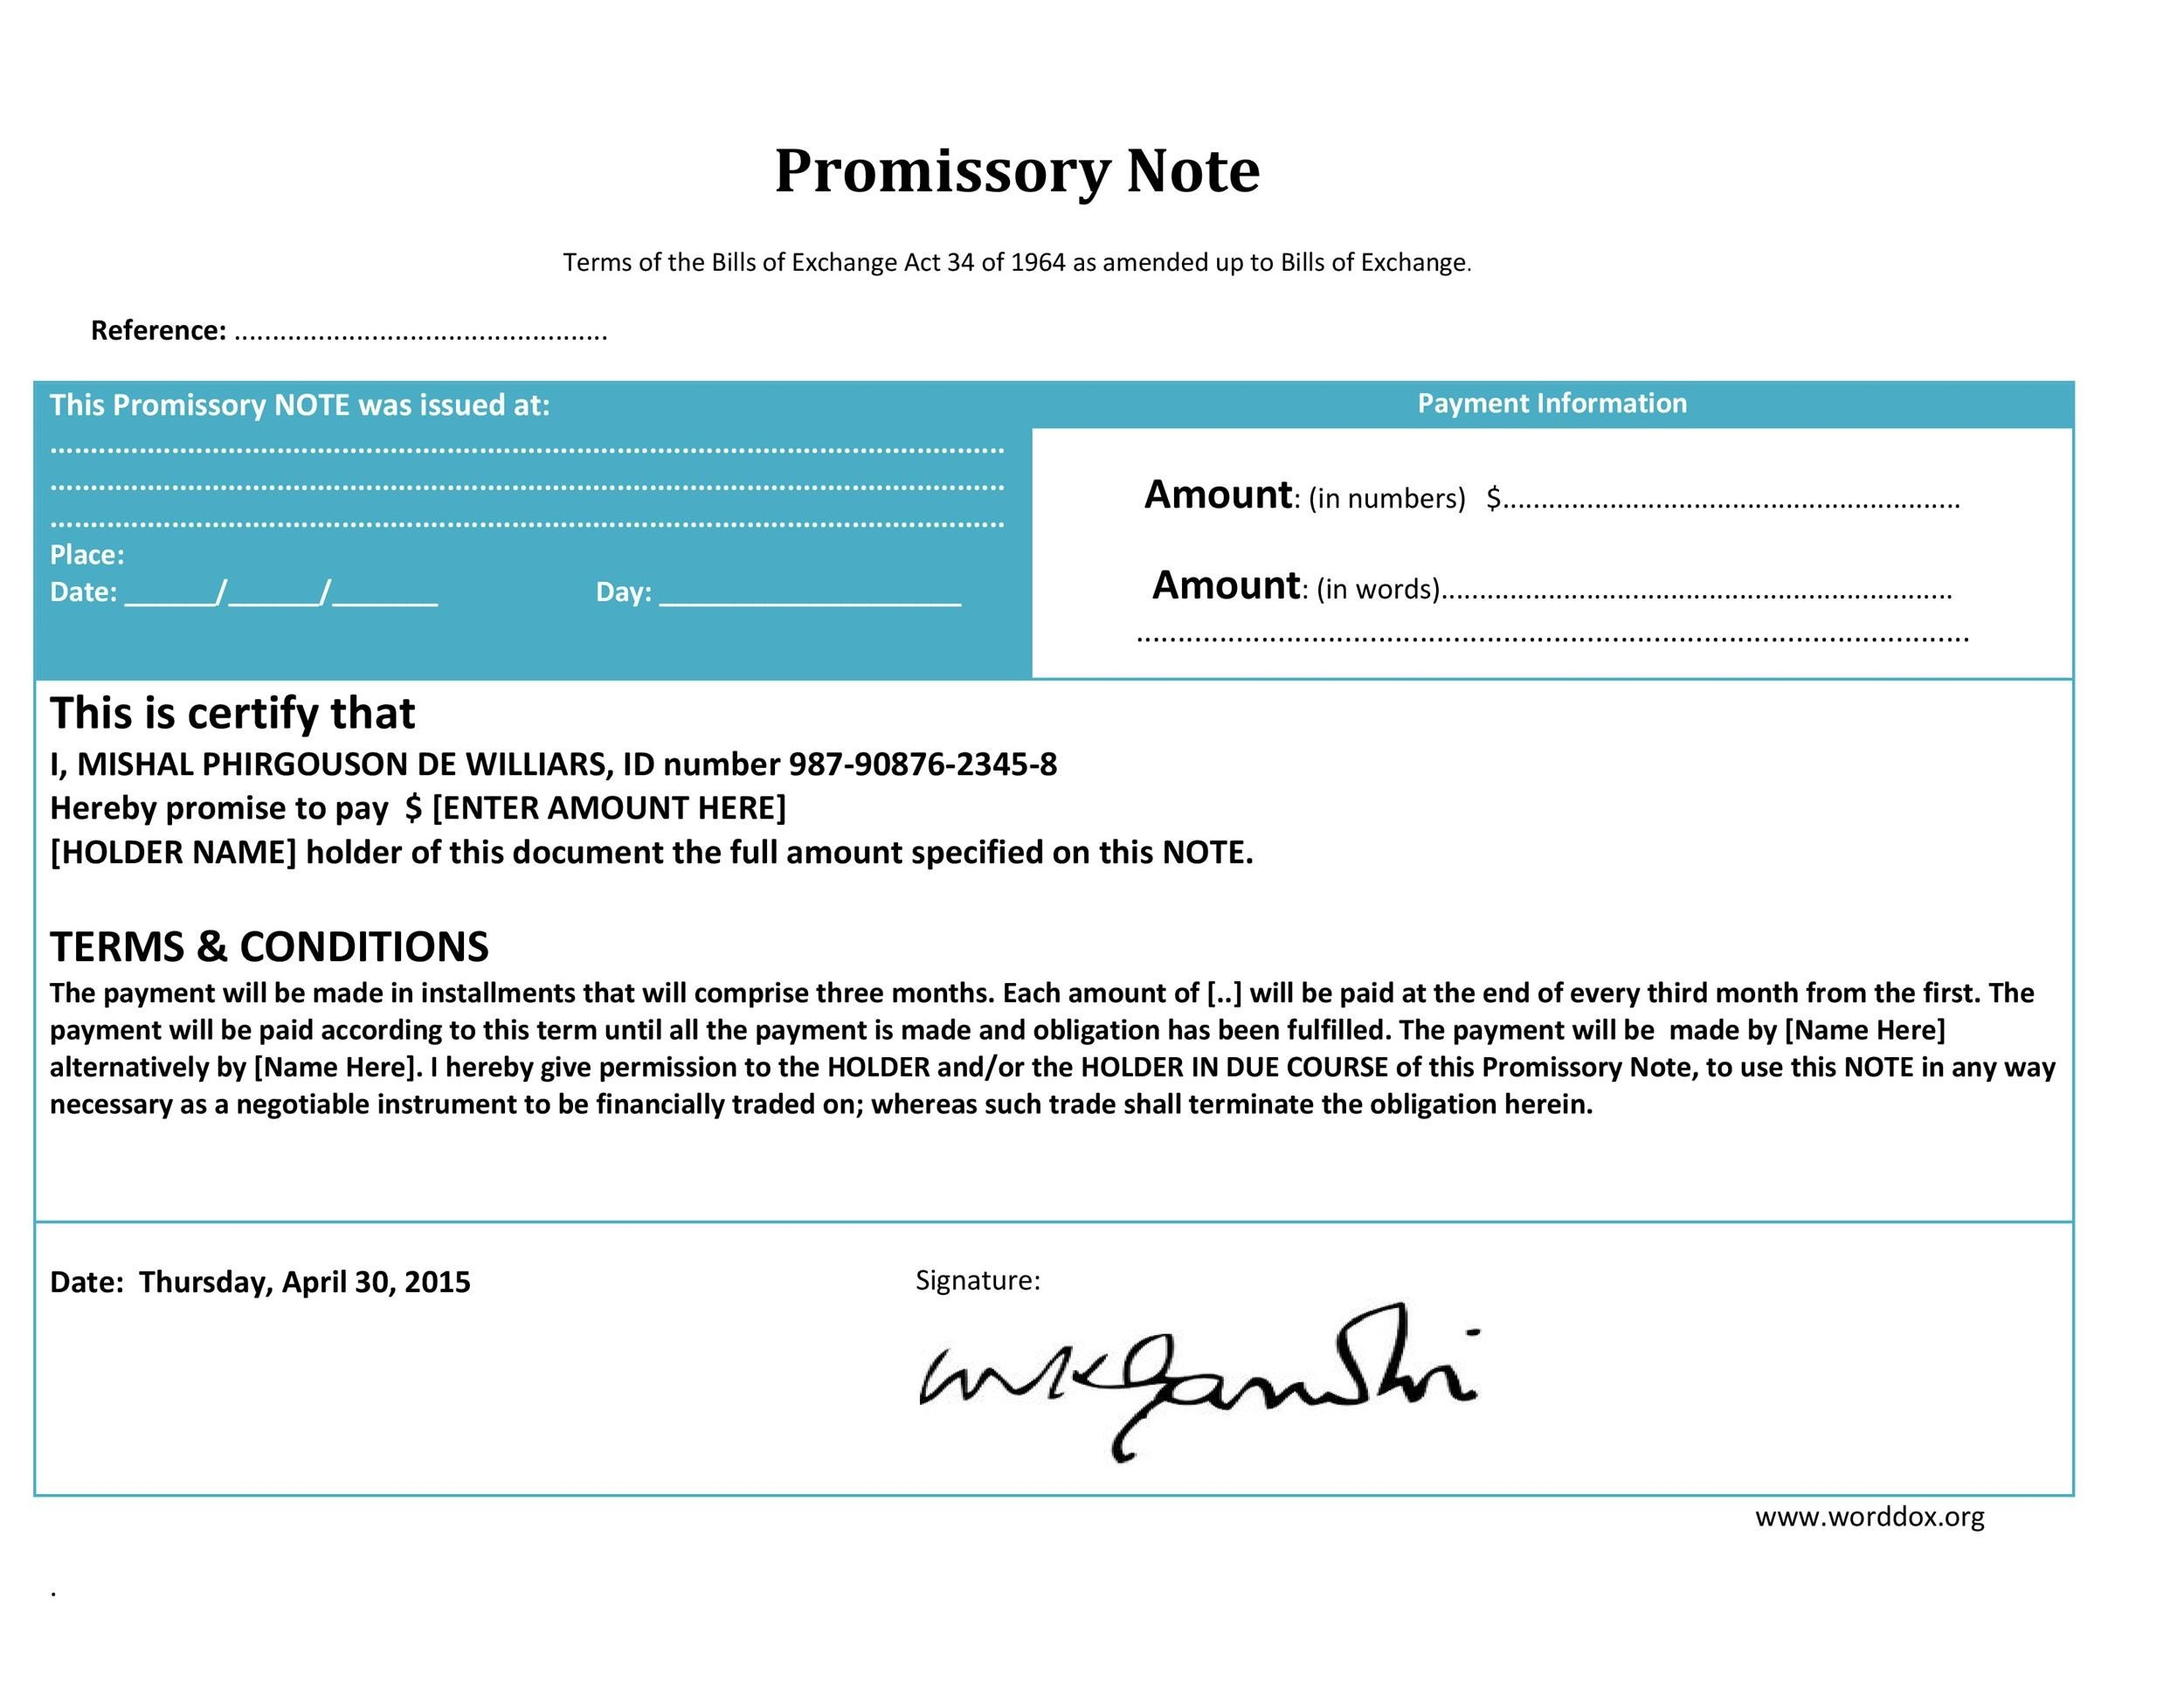 Free Promissory Note Templates  Forms Word  Pdf  Template Lab